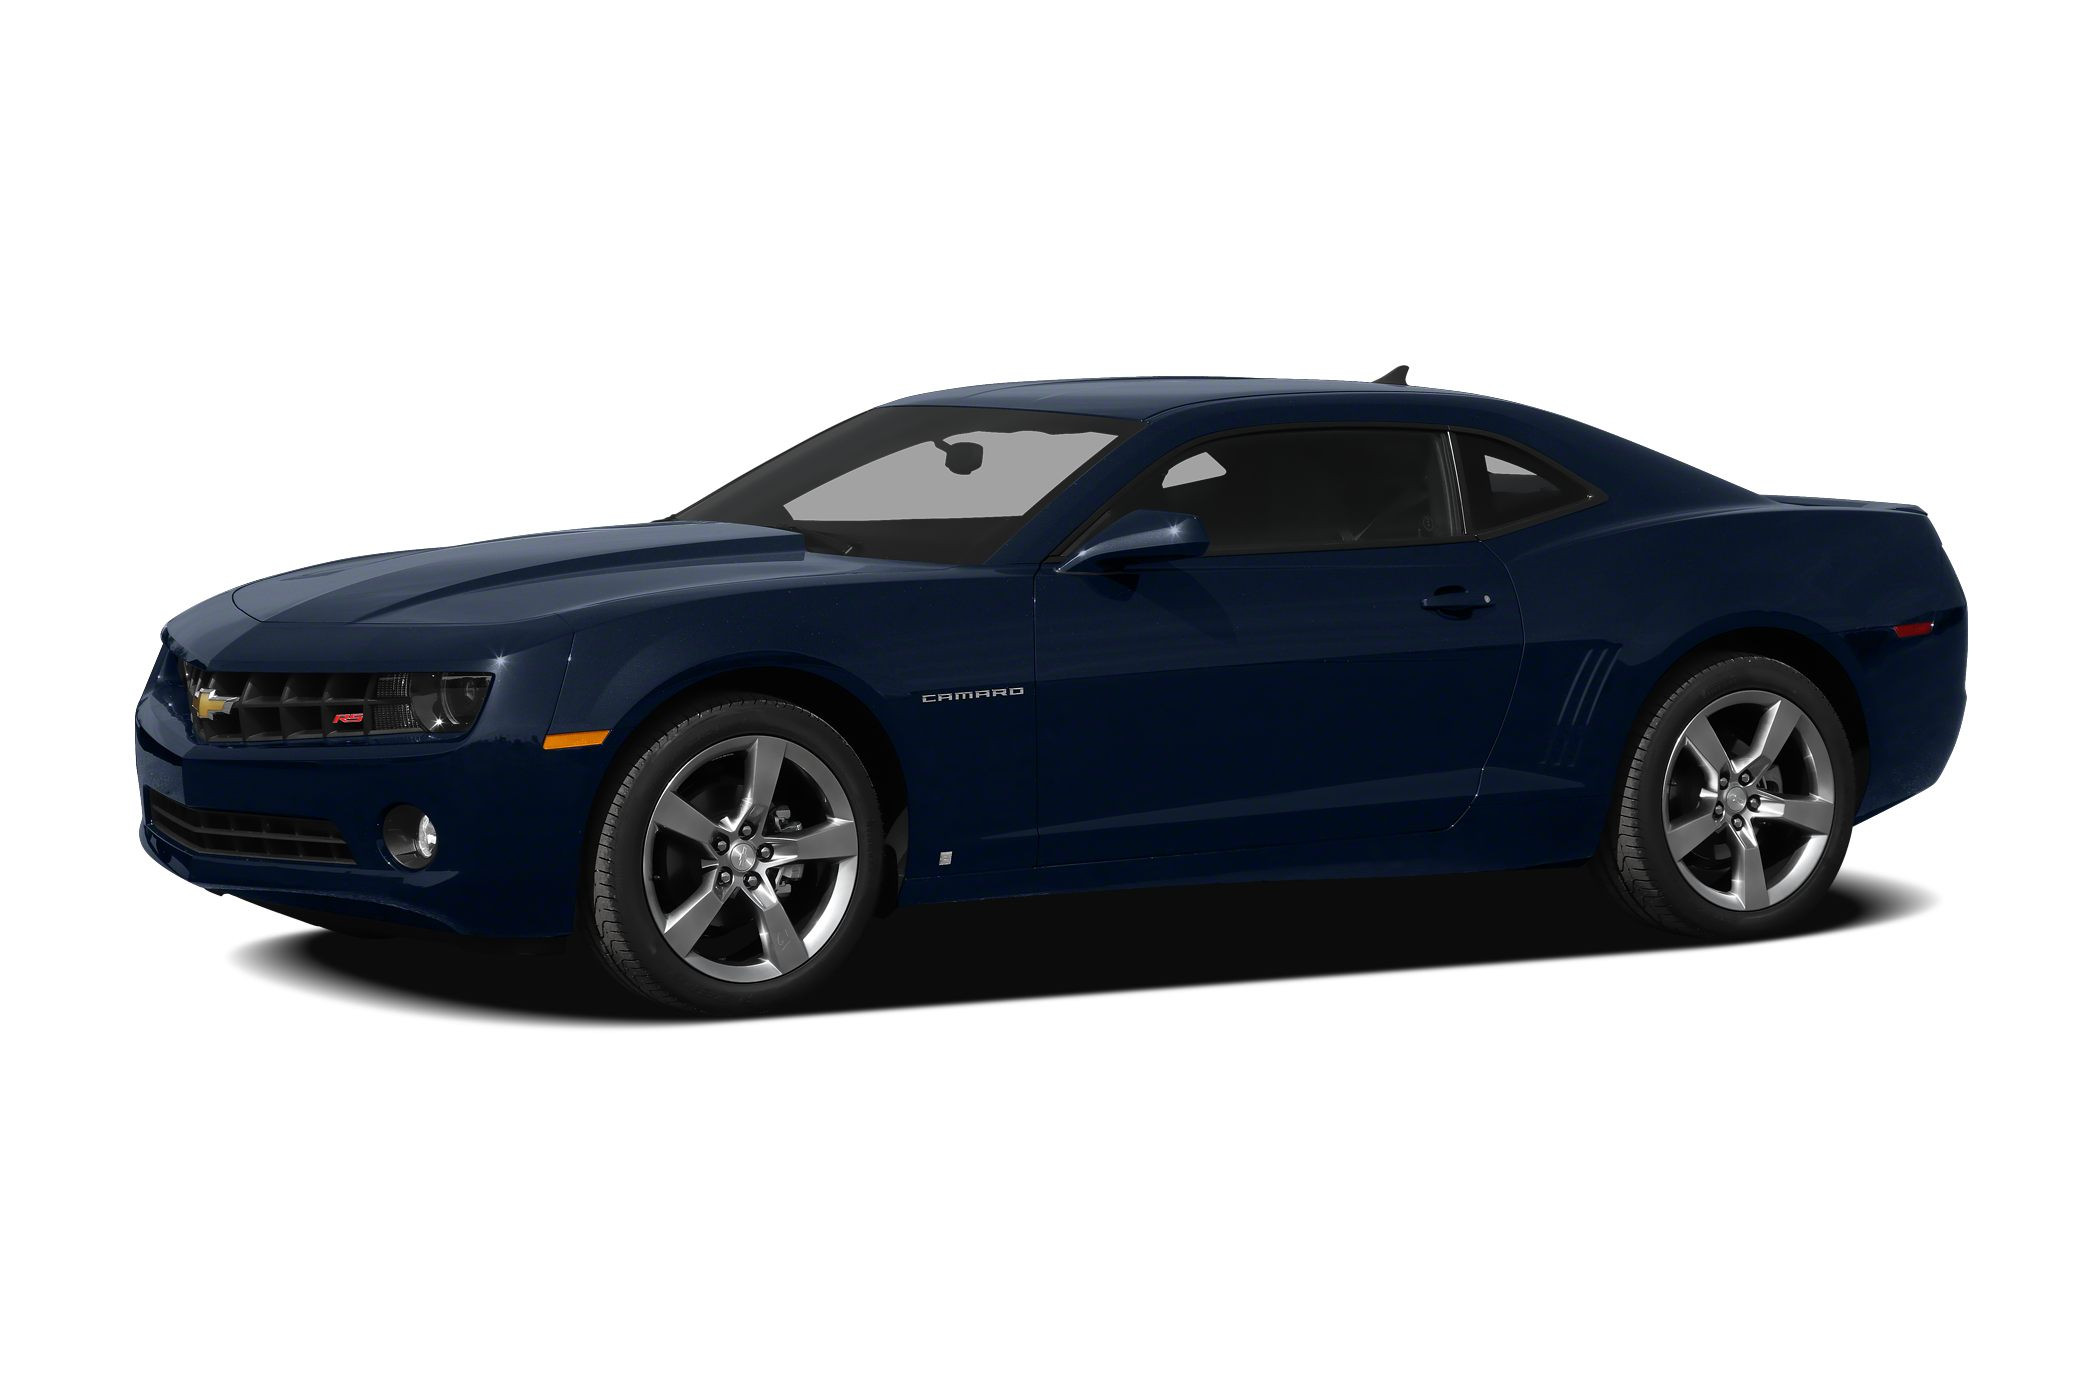 2011 Chevrolet Camaro Specs and Prices